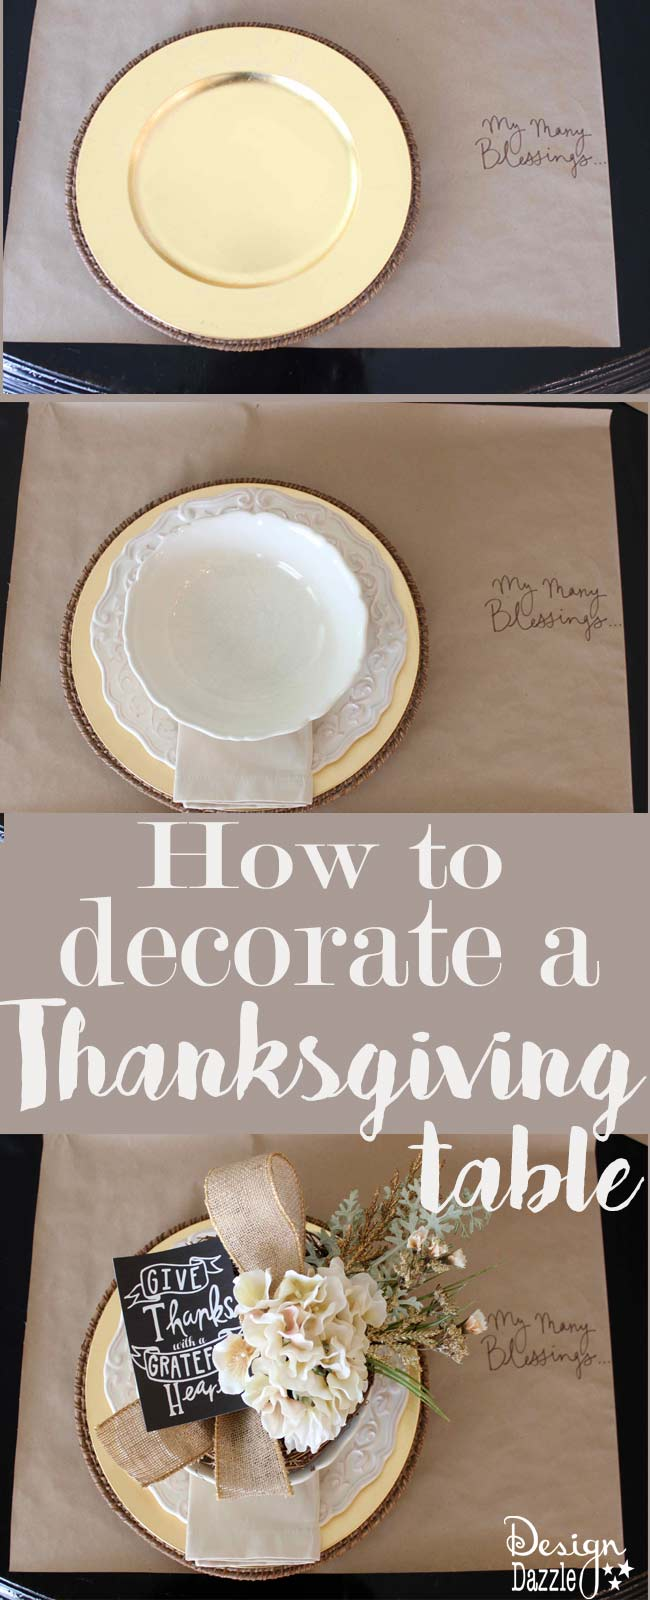 """I'm sharing how-to decorate step-by-step a Thanksgiving tablescape - a bit of neutral with a touch of glitz. Free printable """"Give Thanks with a Grateful Heart"""". Design Dazzle"""